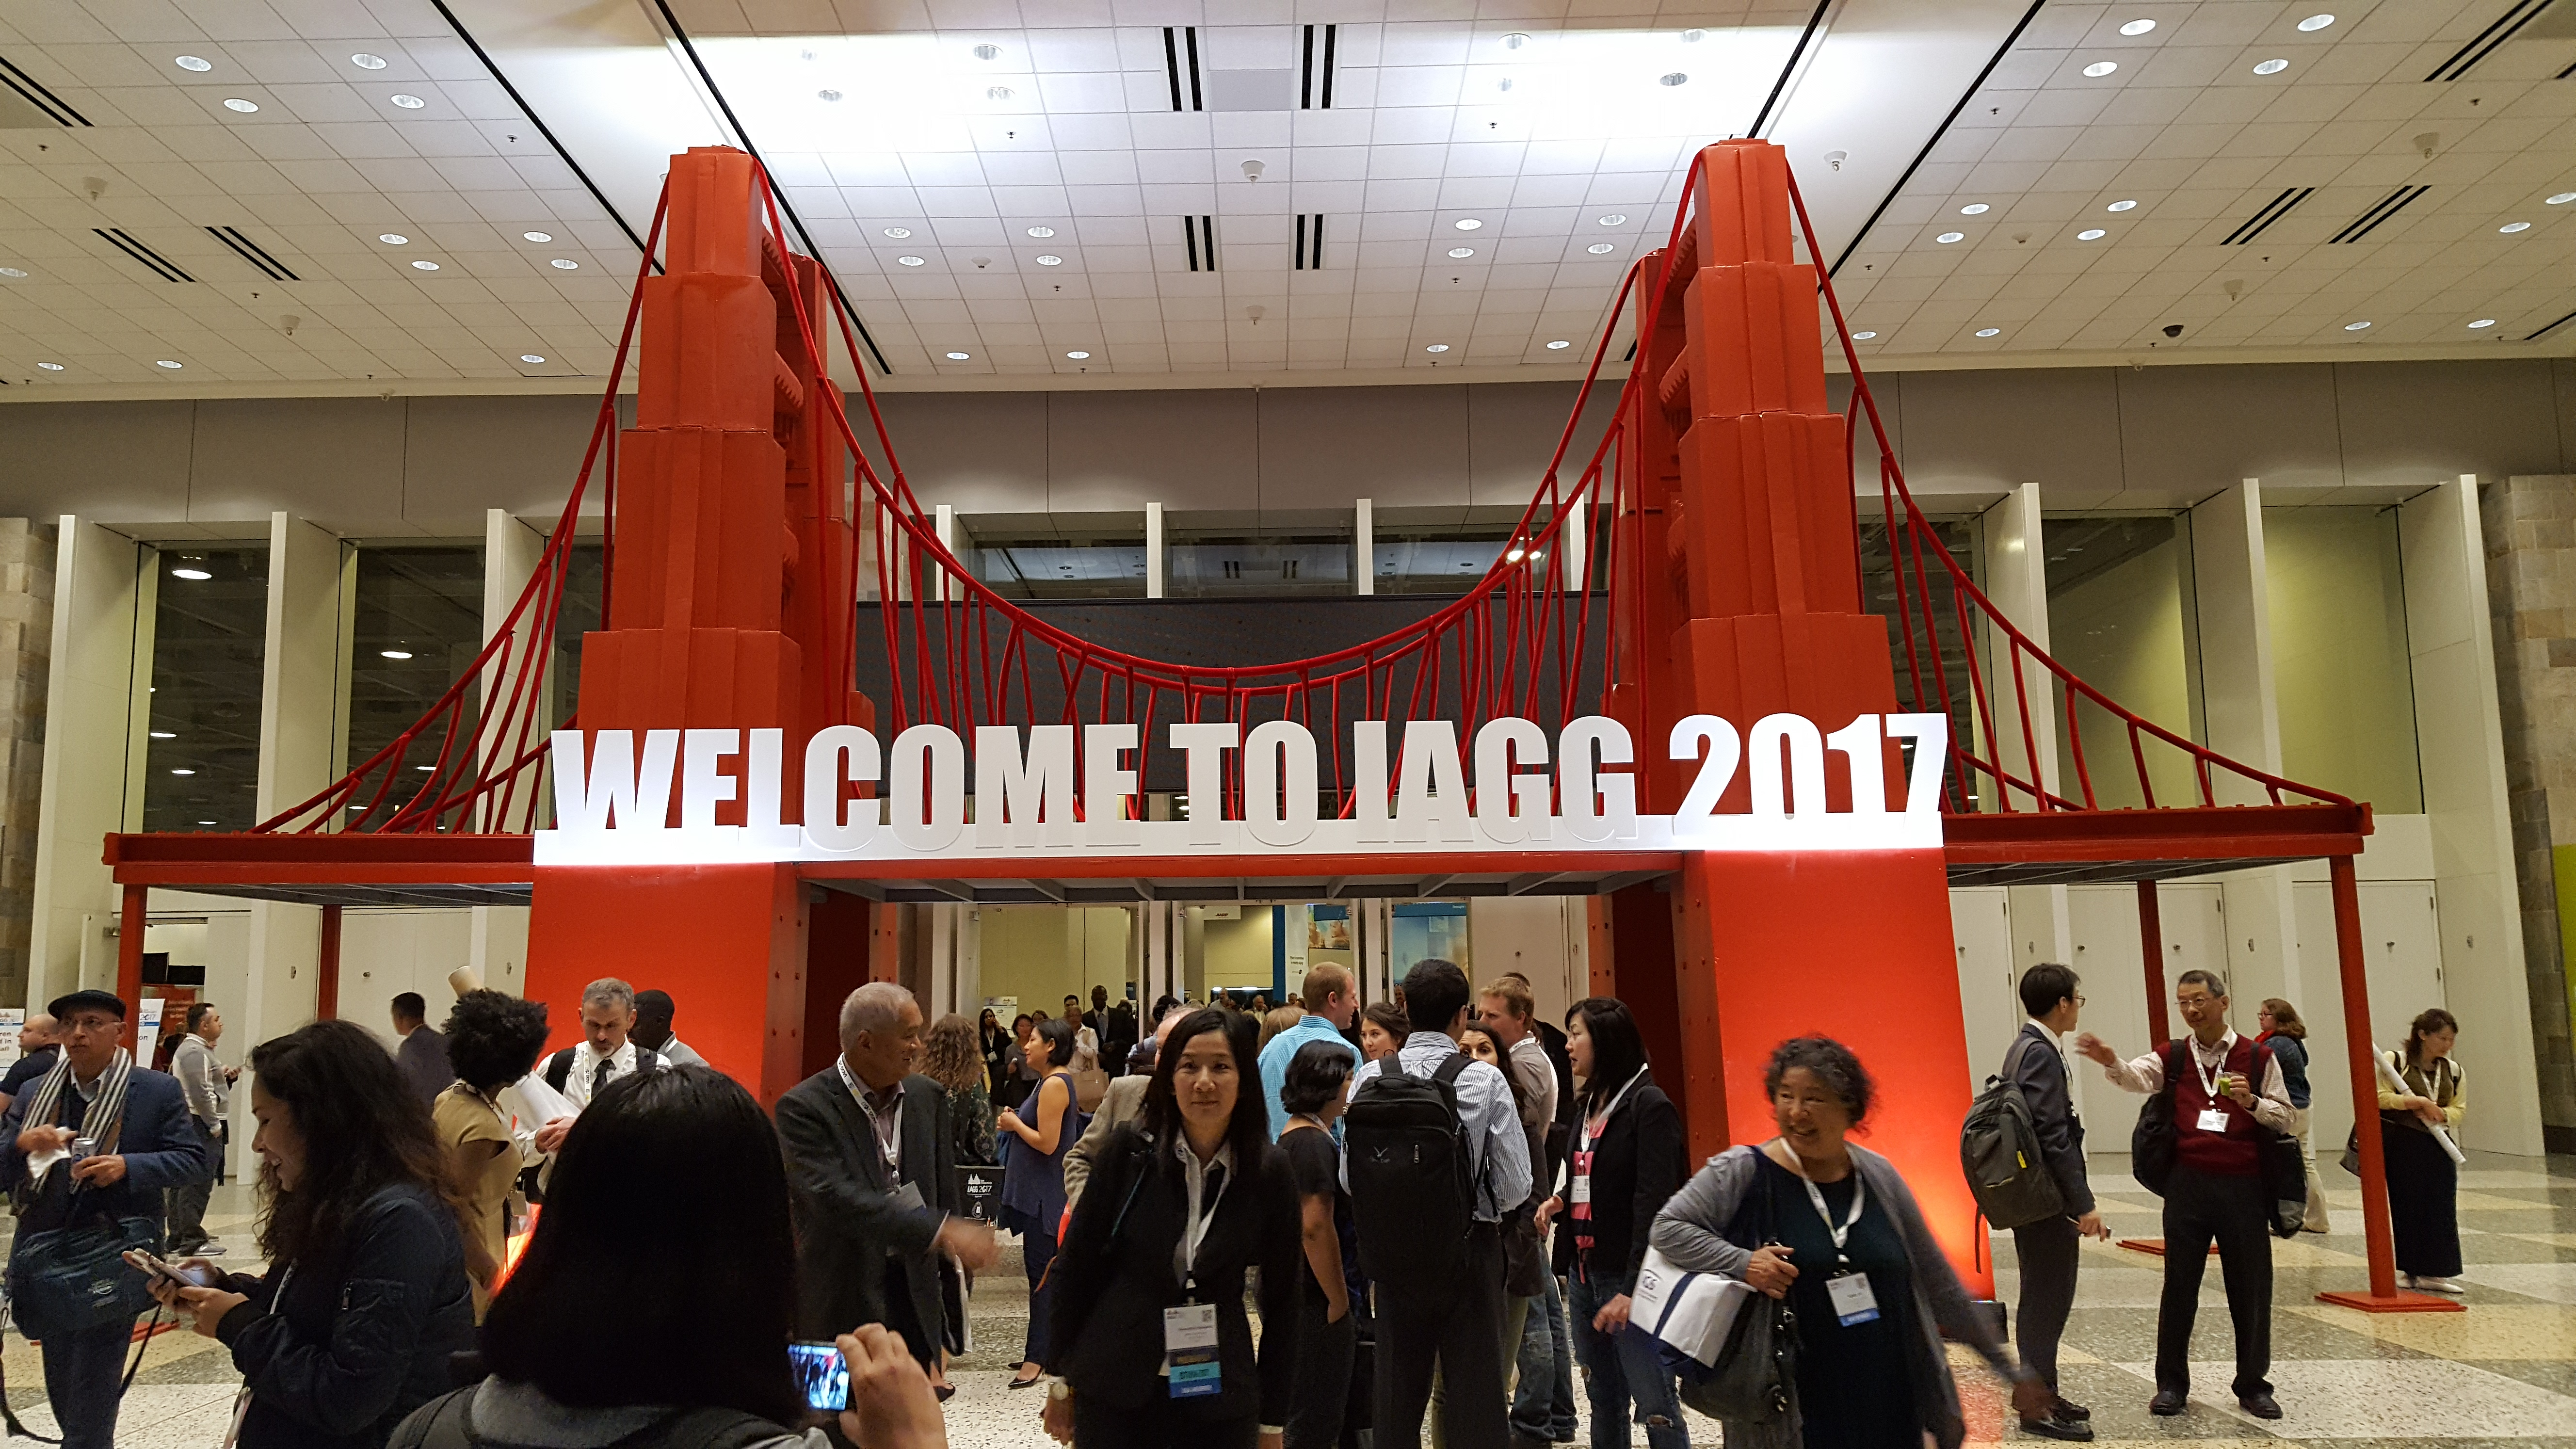 IAGG welcome sign